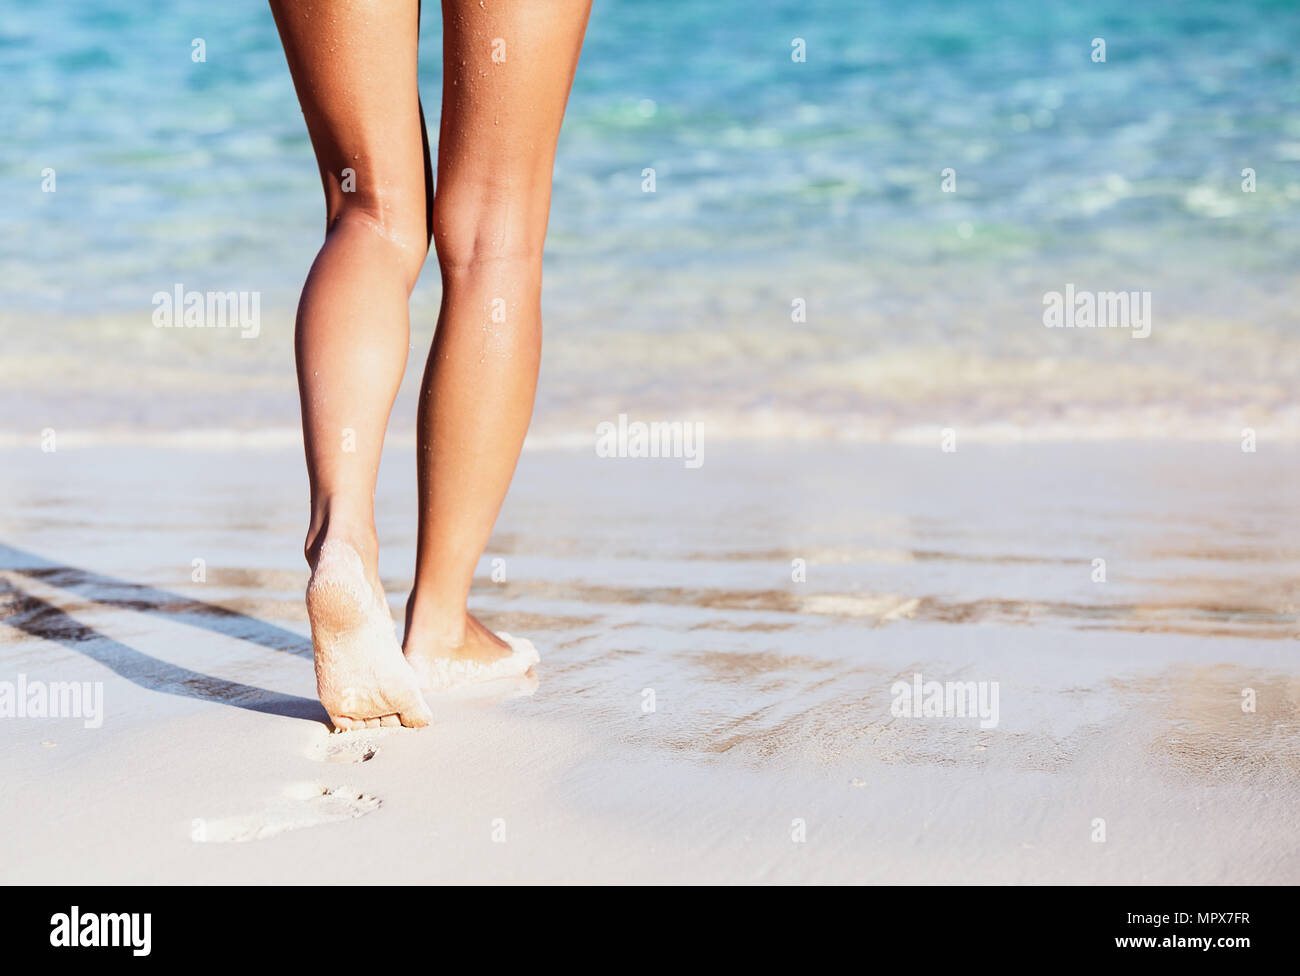 Woman walking into the sea, body part, perfect tanning women's legs, enjoying time on the beach, summer vacation concept - Stock Image